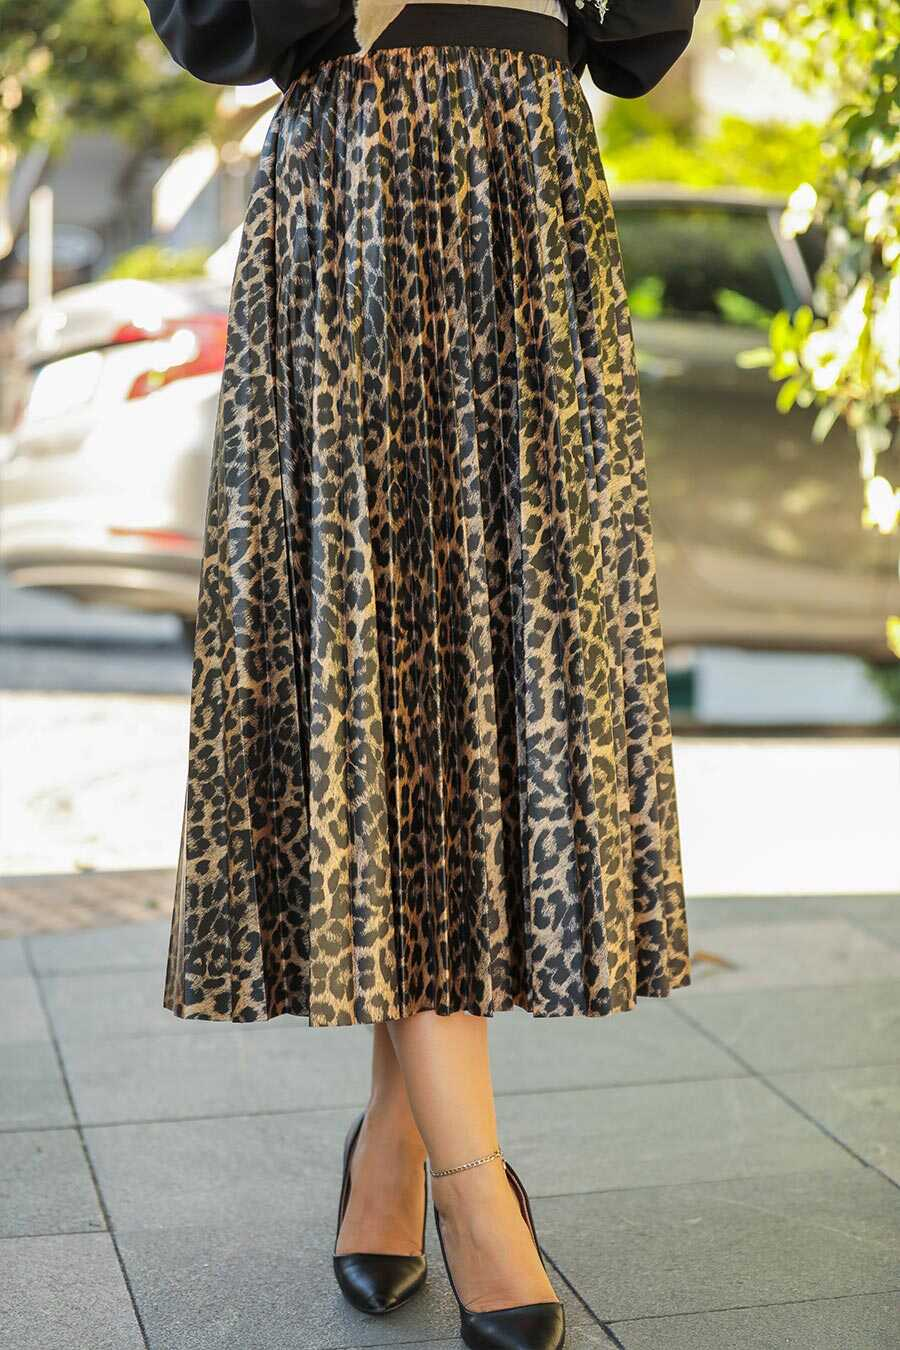 Leopard Patterned Hijab Skirt 12910LP